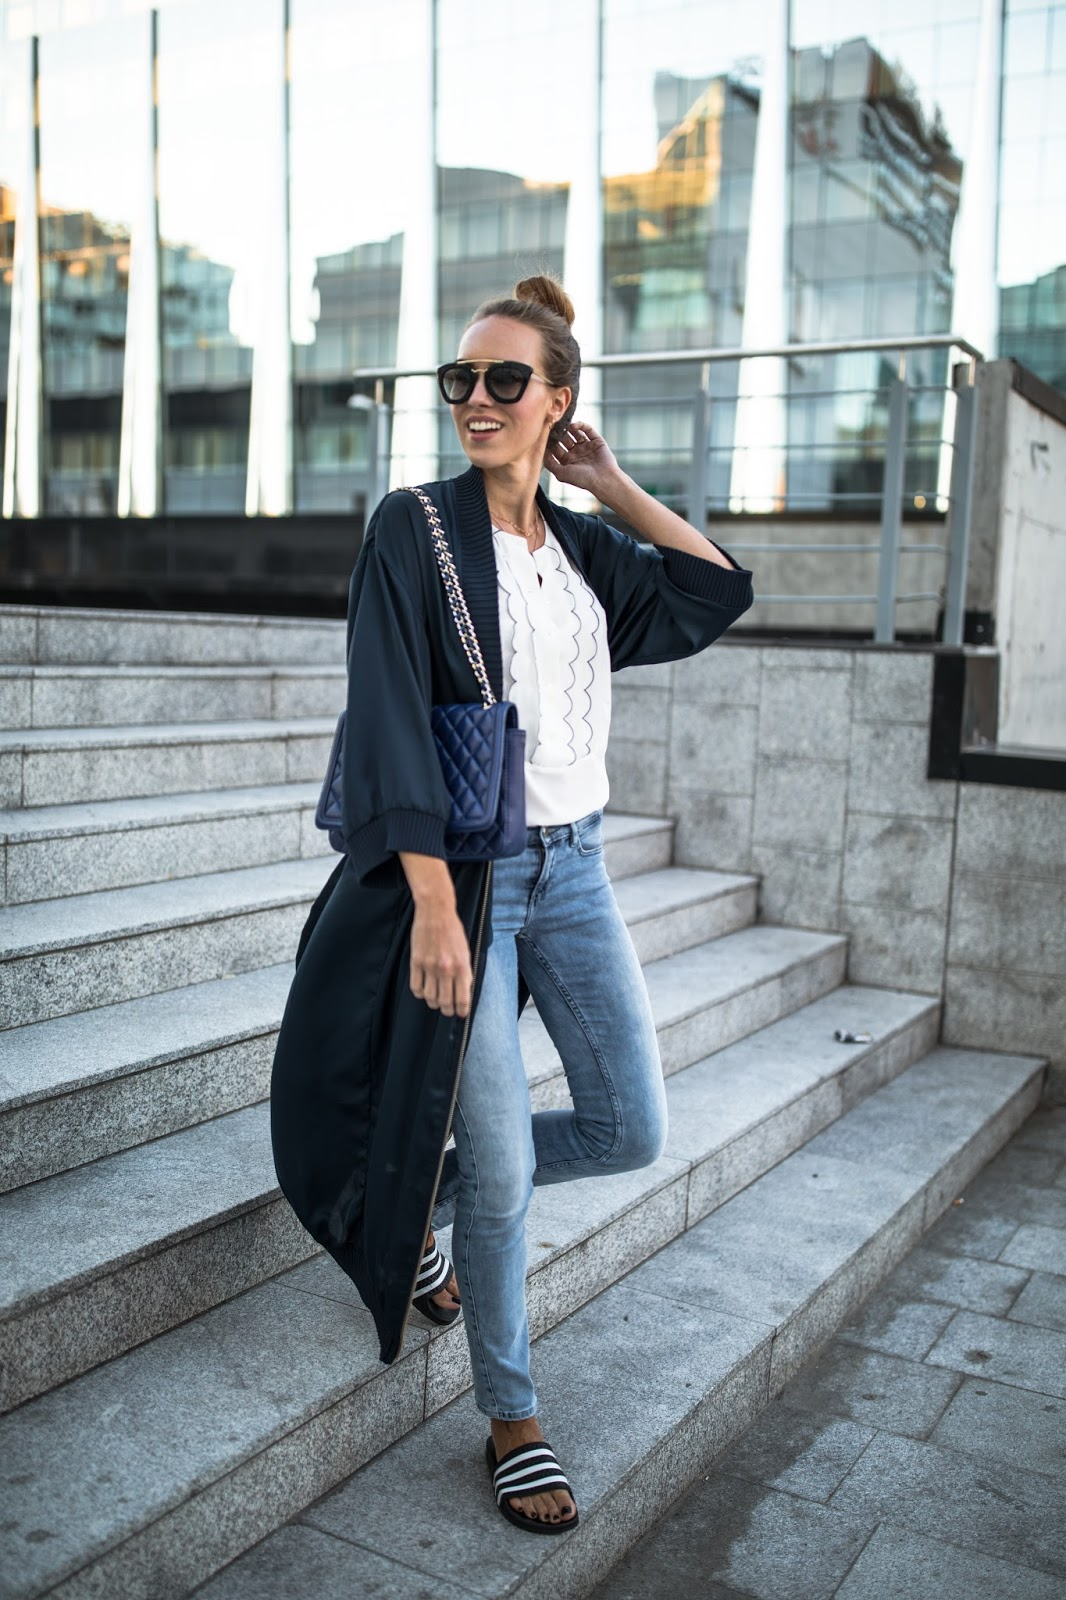 kimono over jeans outfit summer